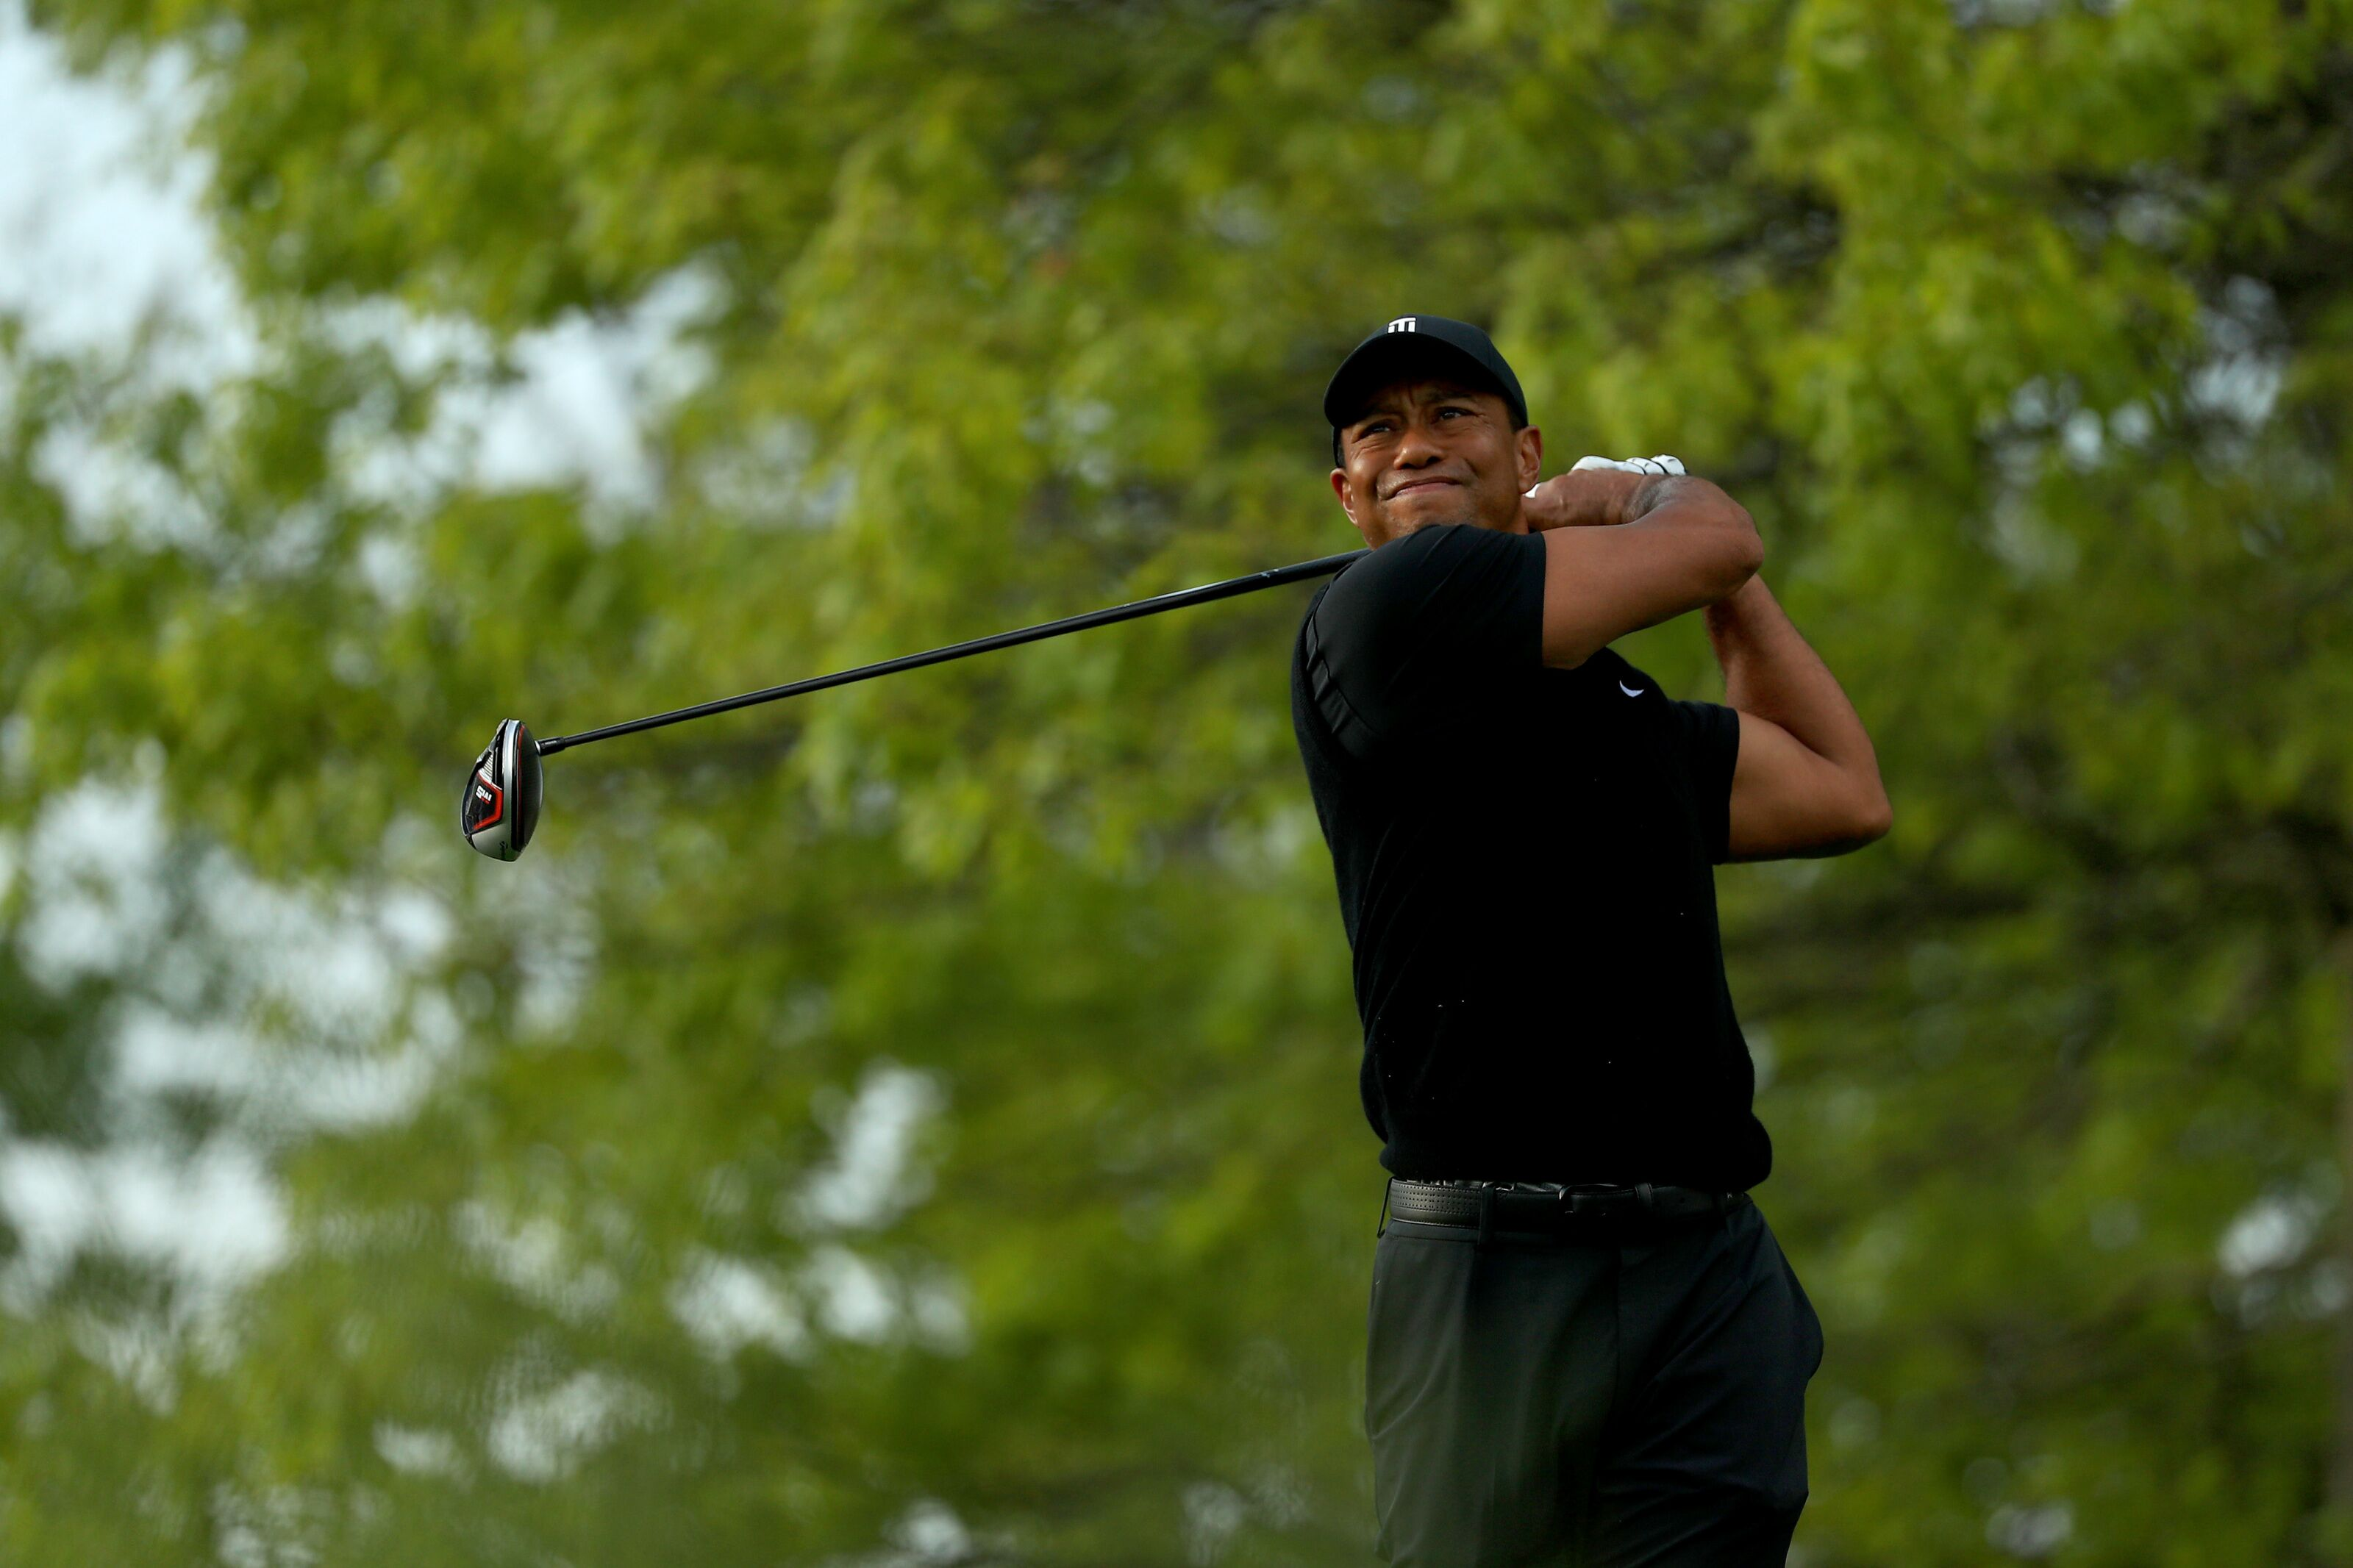 Tiger Woods: Non-major starts needed to keep peak form in second half of 2019